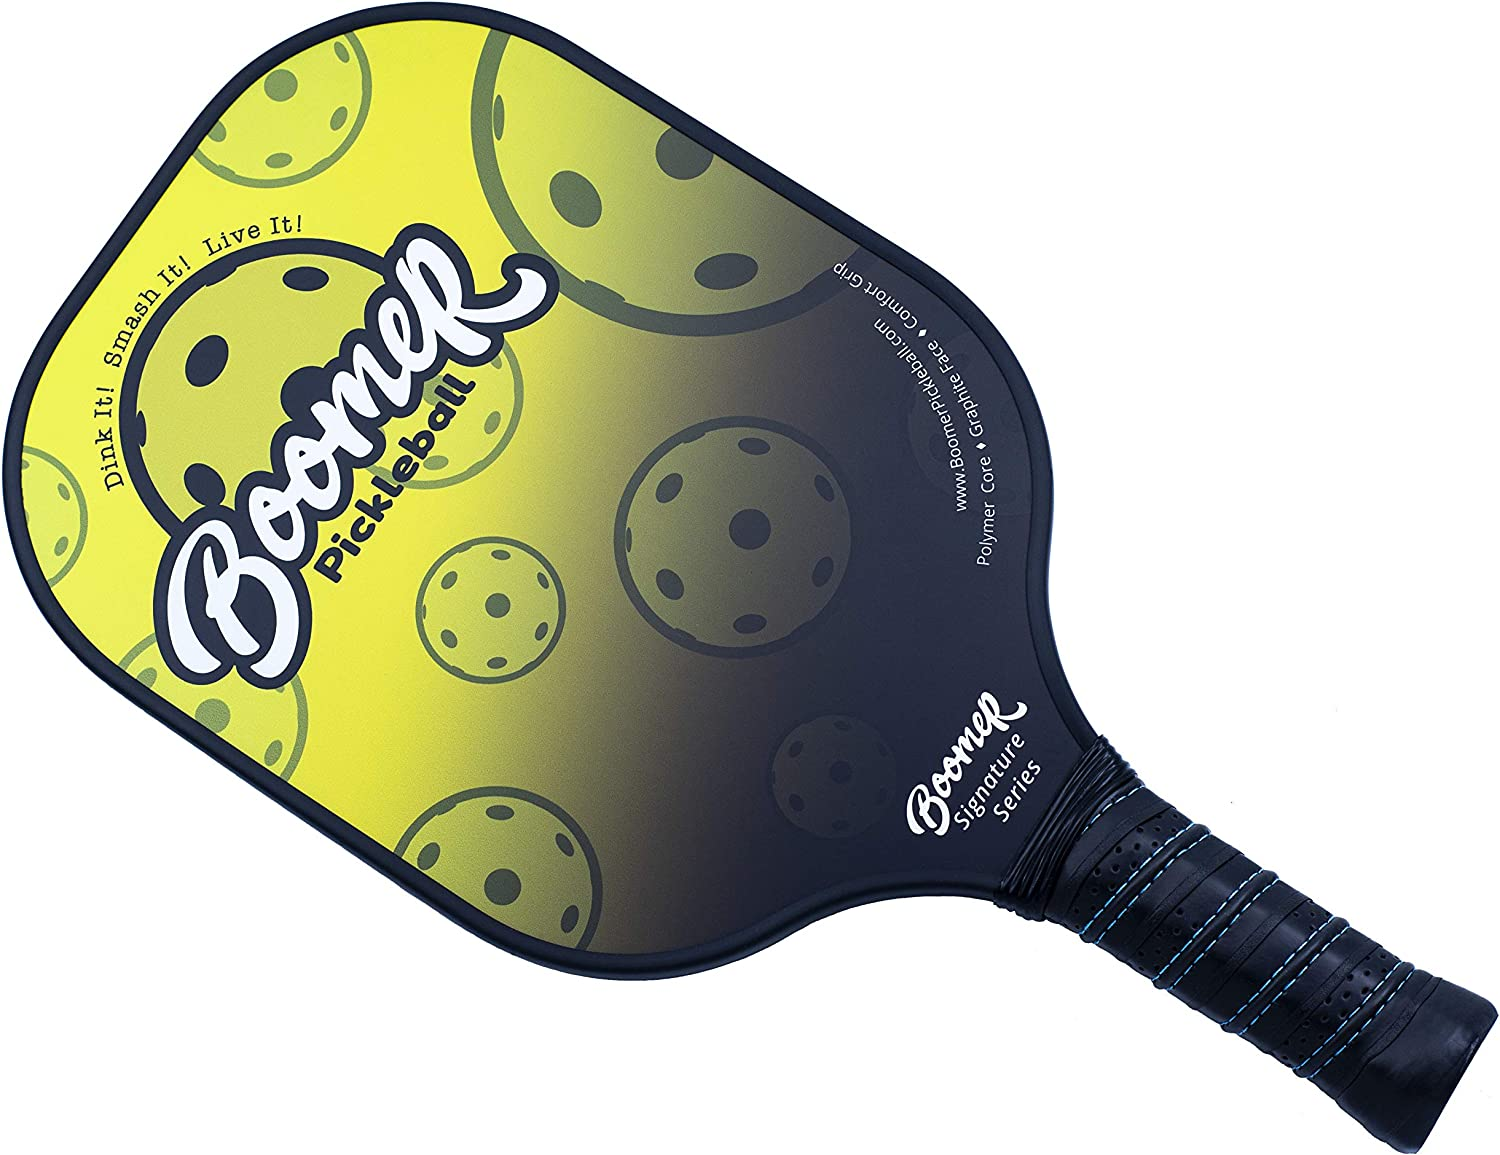 Amazon.com: Boomer Signature Pickleball Paddle – Aprobado ...